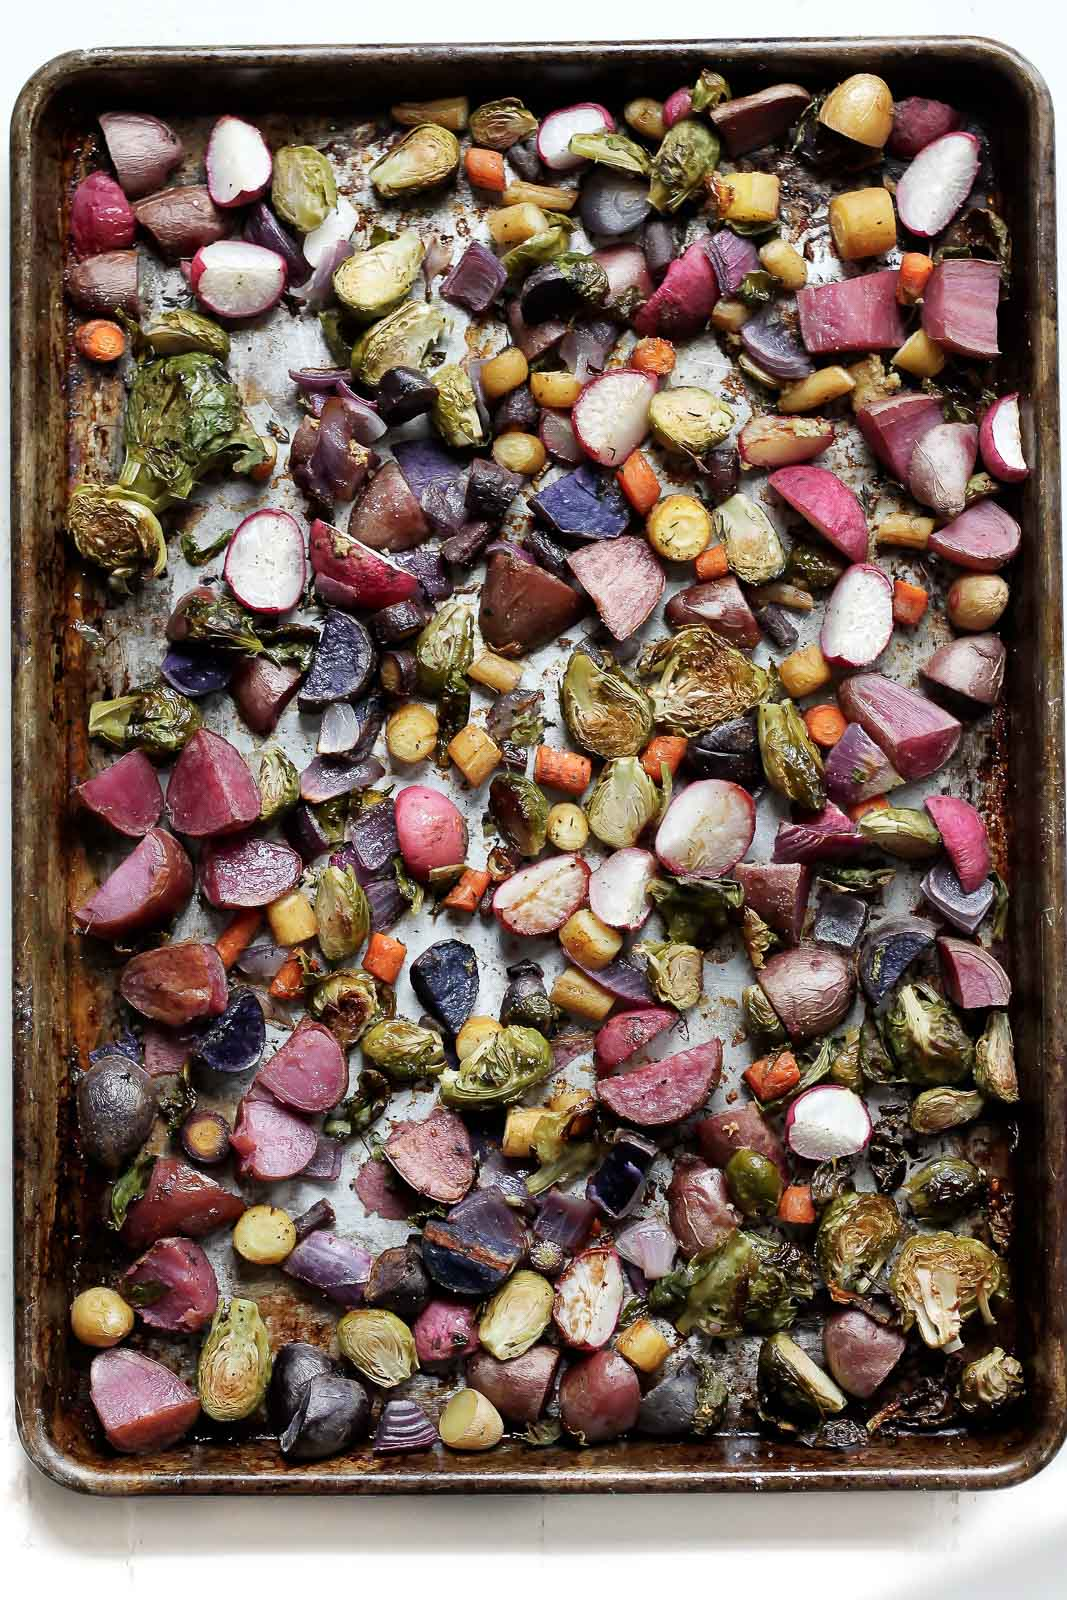 Rainbow veggies roasted to perfection with garlic, olive oil and turmeric, then drizzled with a sweet and spicy chipotle honey yogurt dressing. Throw in some quinoa or enjoy with grilled chicken or salmon as a main dish!